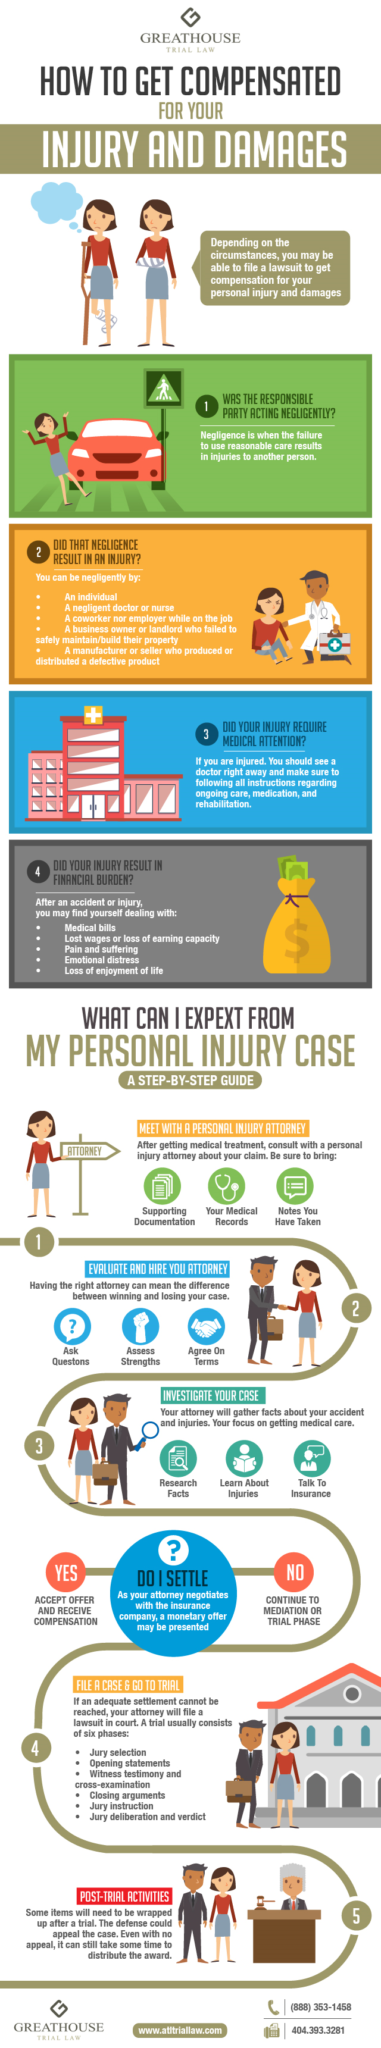 How to get compensated for an Atlanta personal injury